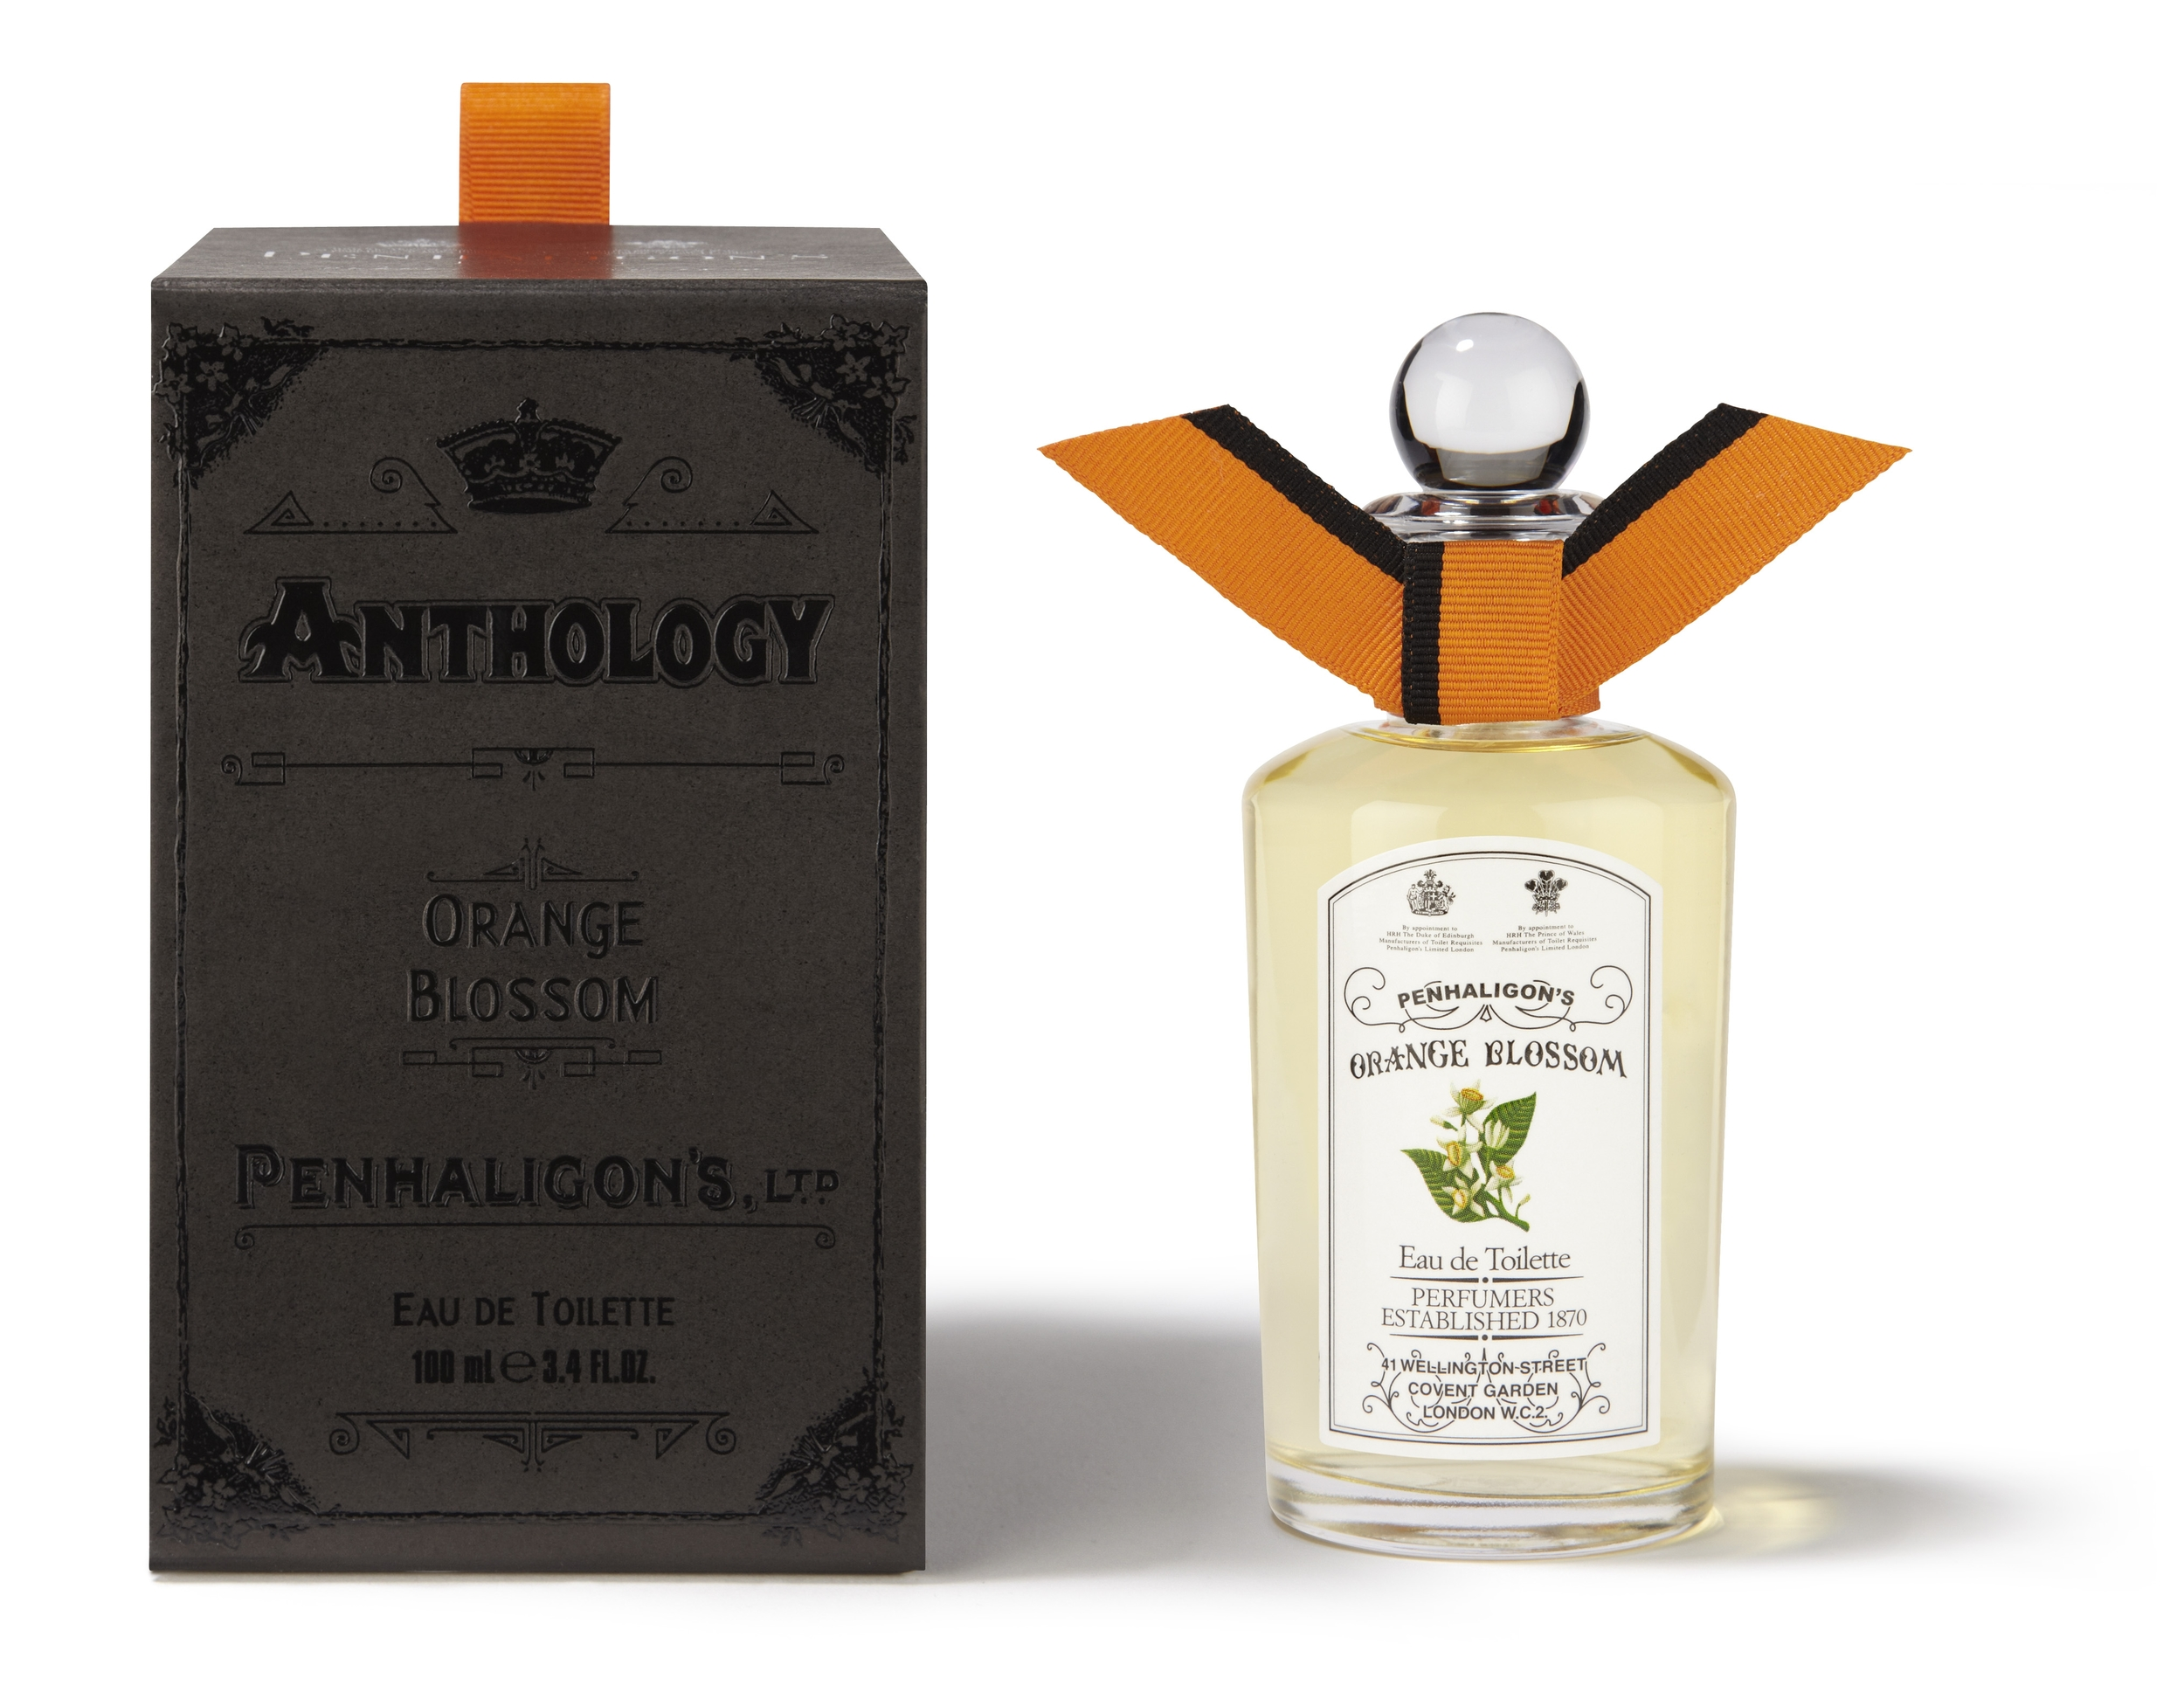 Originally created in 1976, Orange Blossom has been transformed into a luminous honeyed floral. Lush with Calabrian orange and bergamot, tempered with Virginian cedar, rose and peach flower. Wearing Orange Blossom is like walking from shade into warm sunshine.  Orange Blossom 100ml Price: HK$1,620  Feel the love in the air!   www.penhaligons.com    Facebook Page: https://www.facebook.com/PenhaligonsHongKong